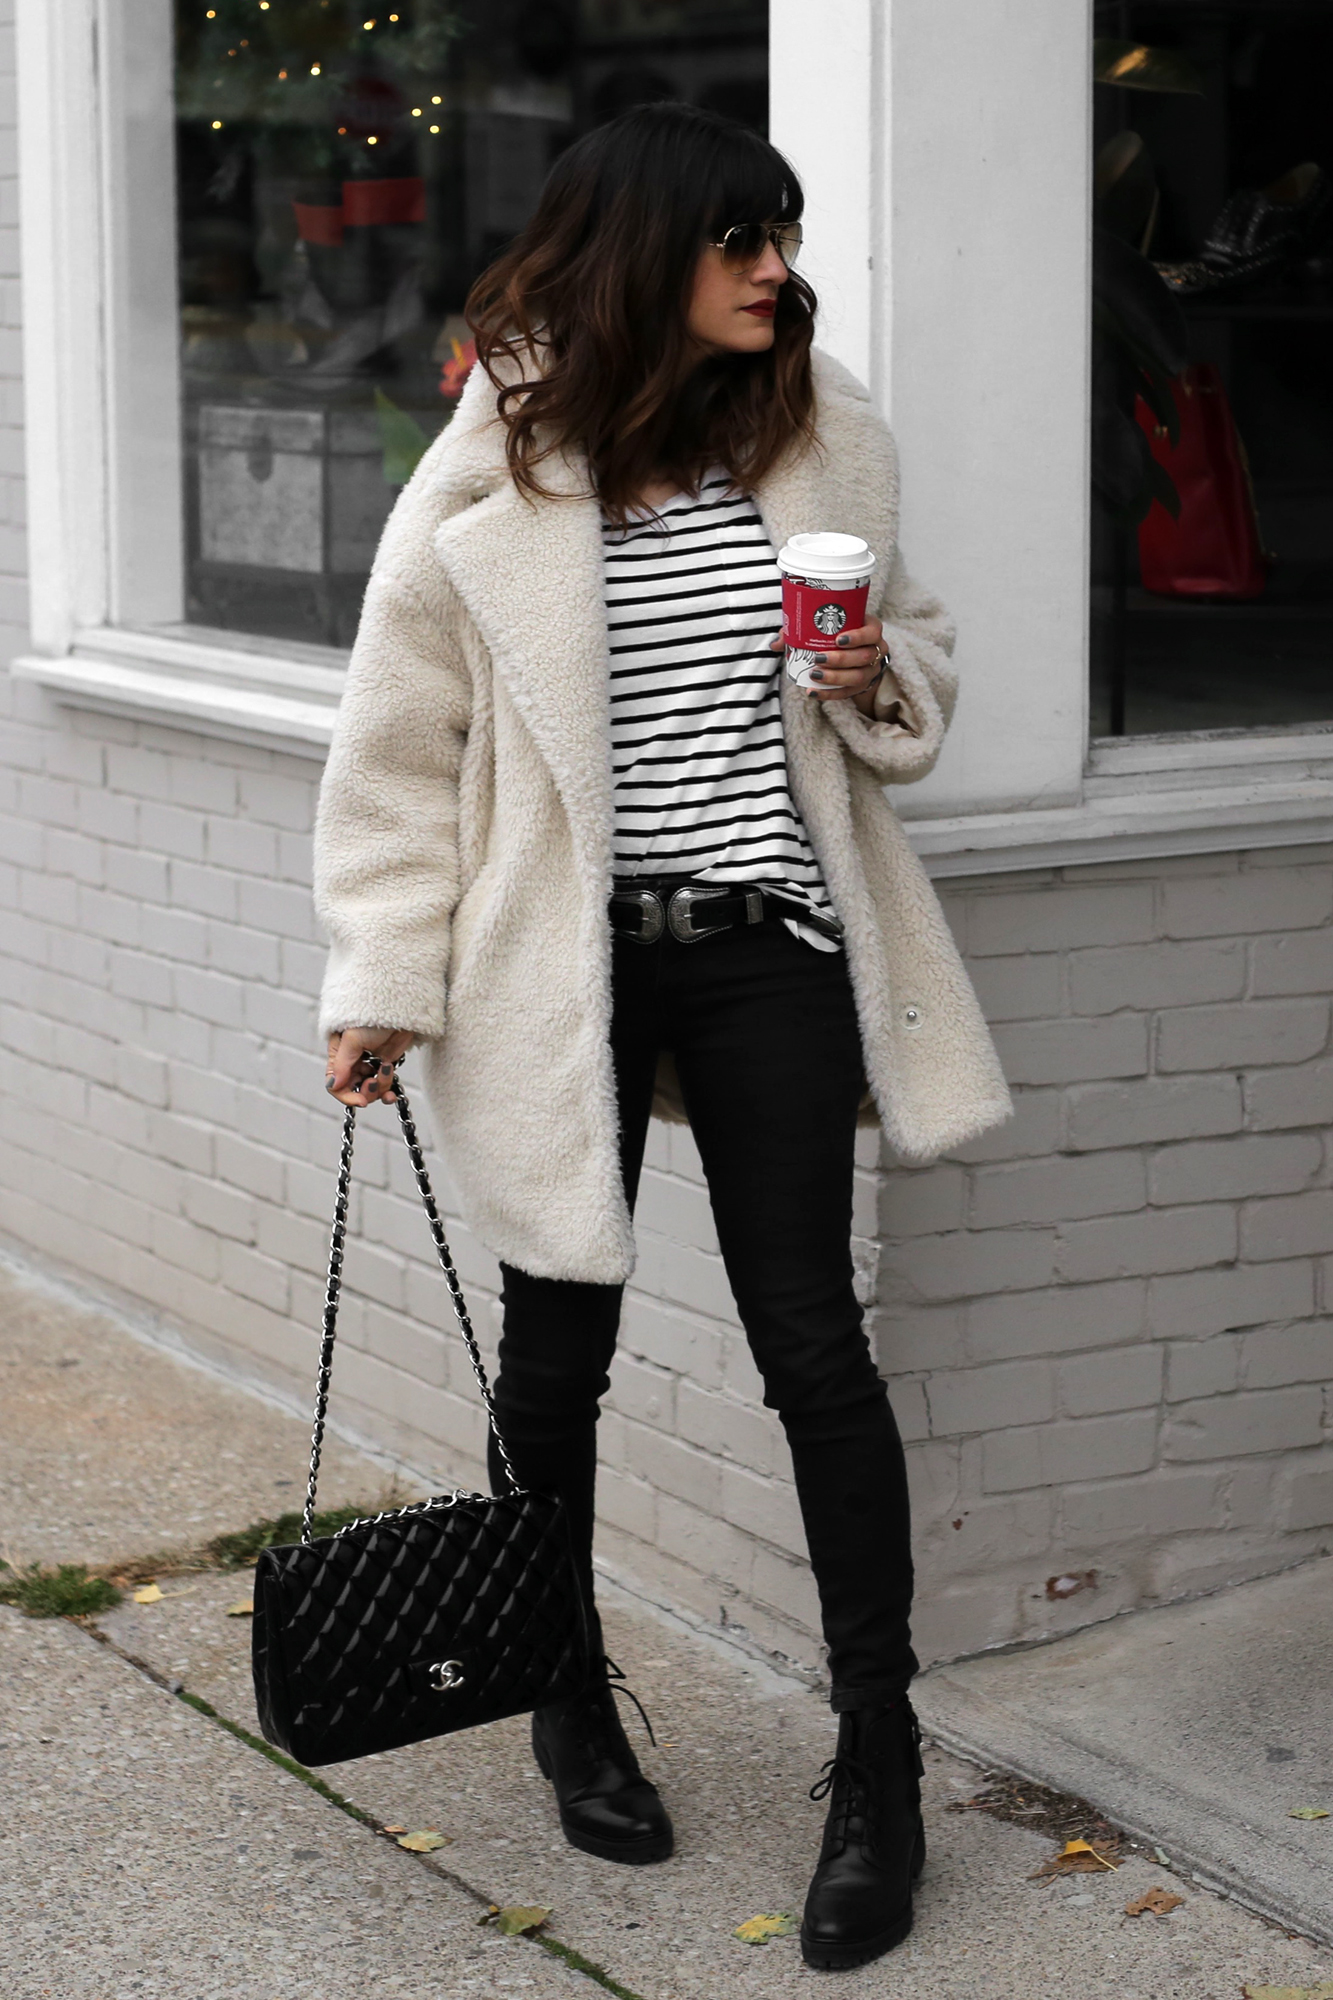 Fuzzy Topshop coat, striped top, black skinny jeans and patent leather Chanel jumbo bag street style - rocker chic - parisian style - french style_2827.jpg